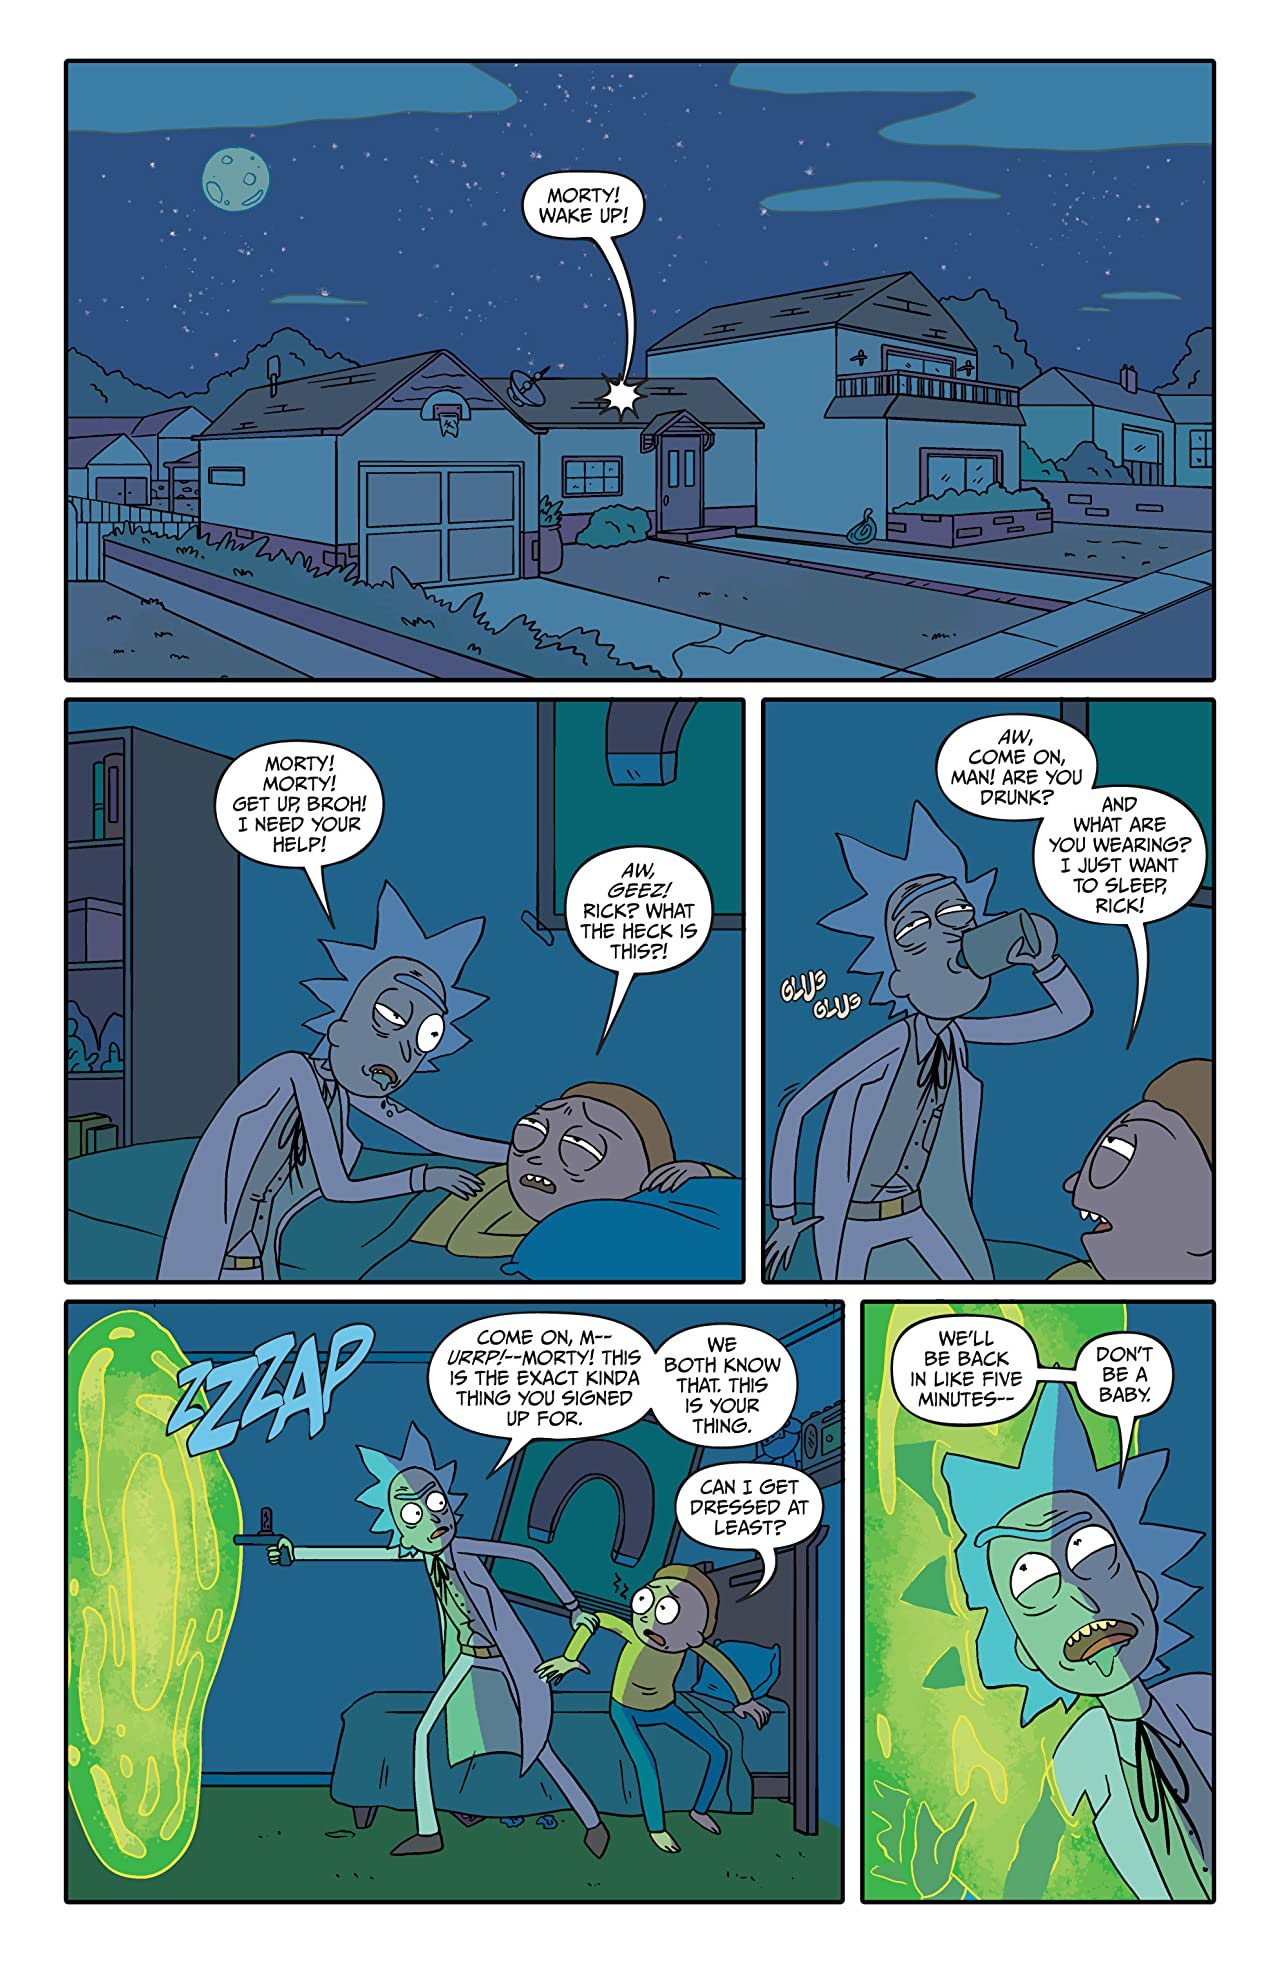 Rick and Morty #4